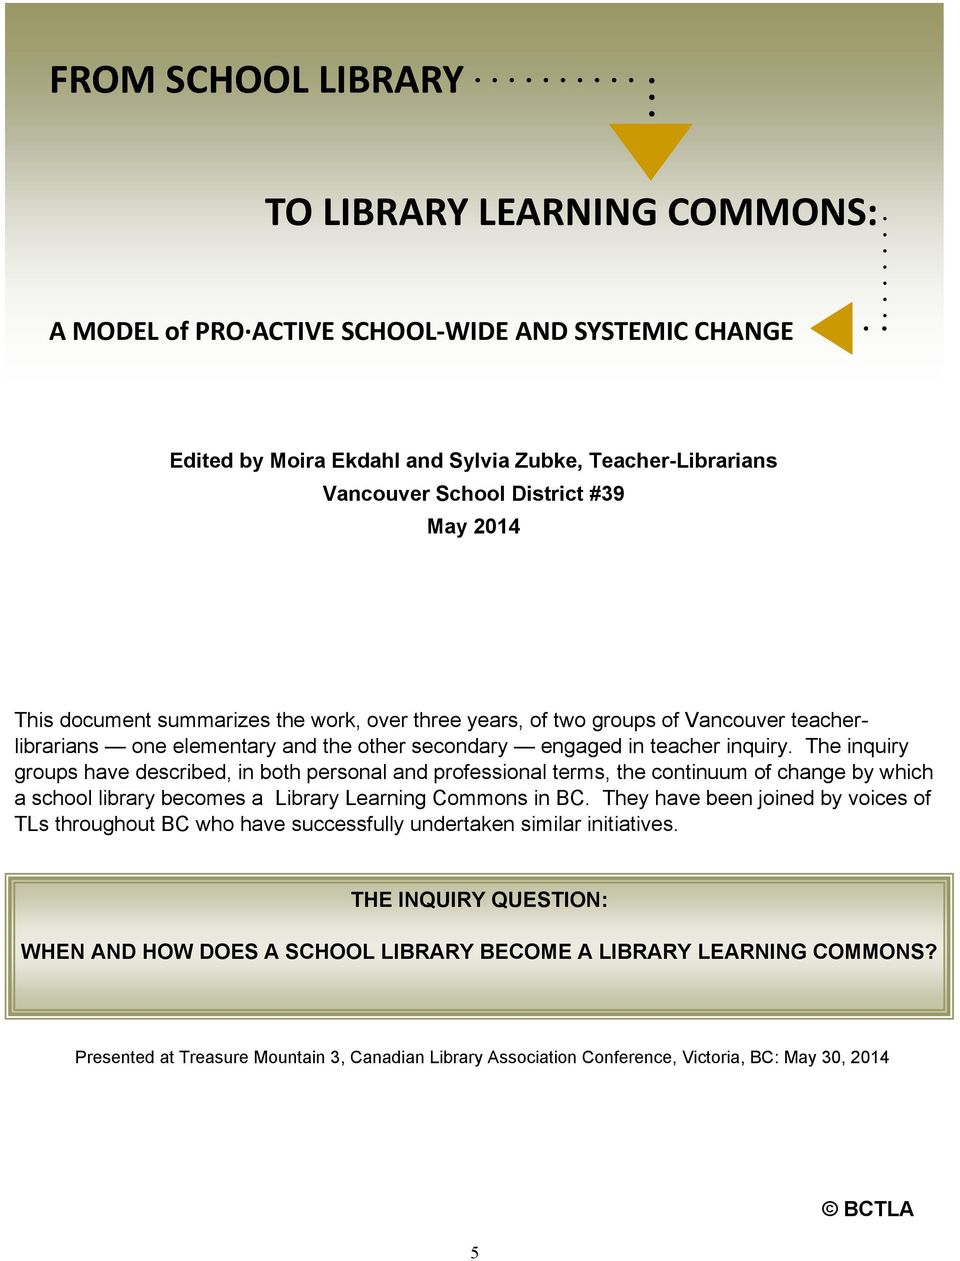 The inquiry groups have described, in both personal and professional terms, the continuum of change by which a school library becomes a Library Learning Commons in BC.